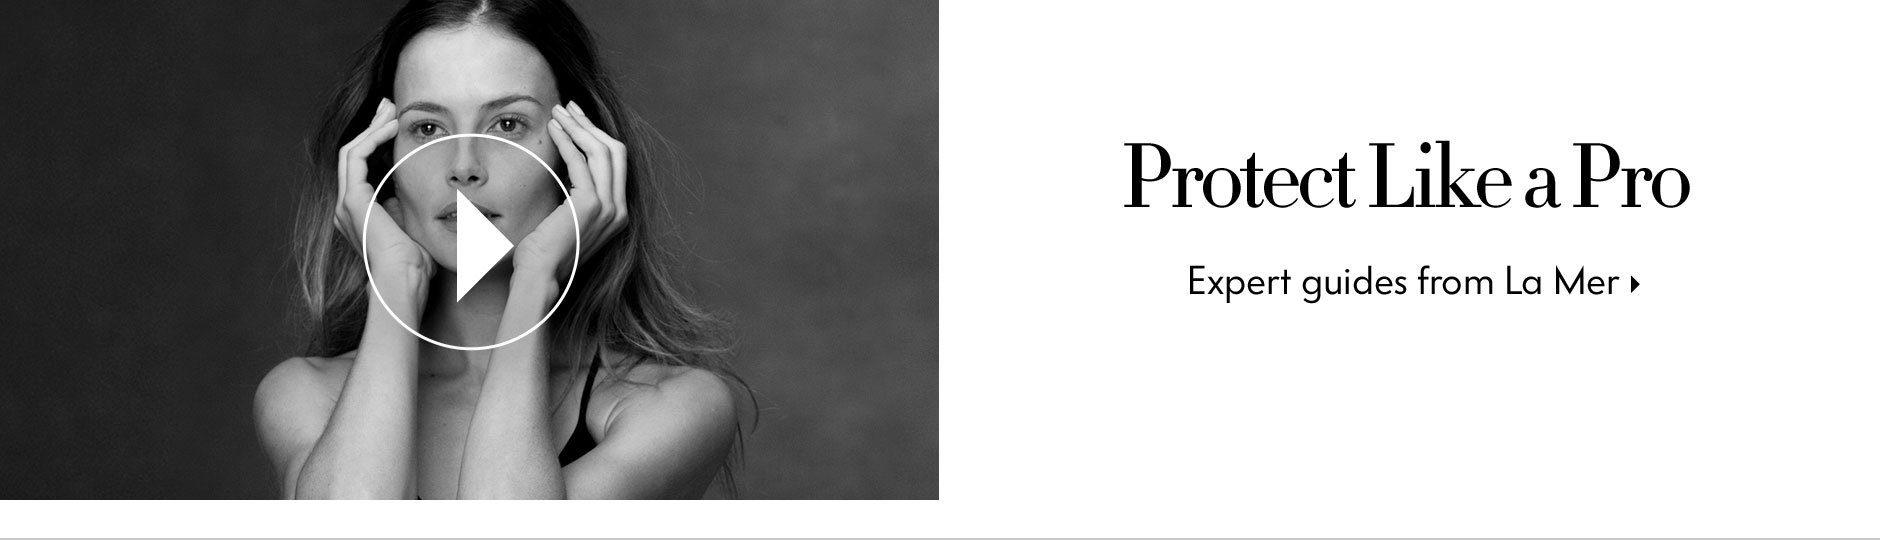 Protect Like A Pro: La Mer Video Library - Expert guides to perfecting lifelong antiaging, glow-enhancing skin care routines